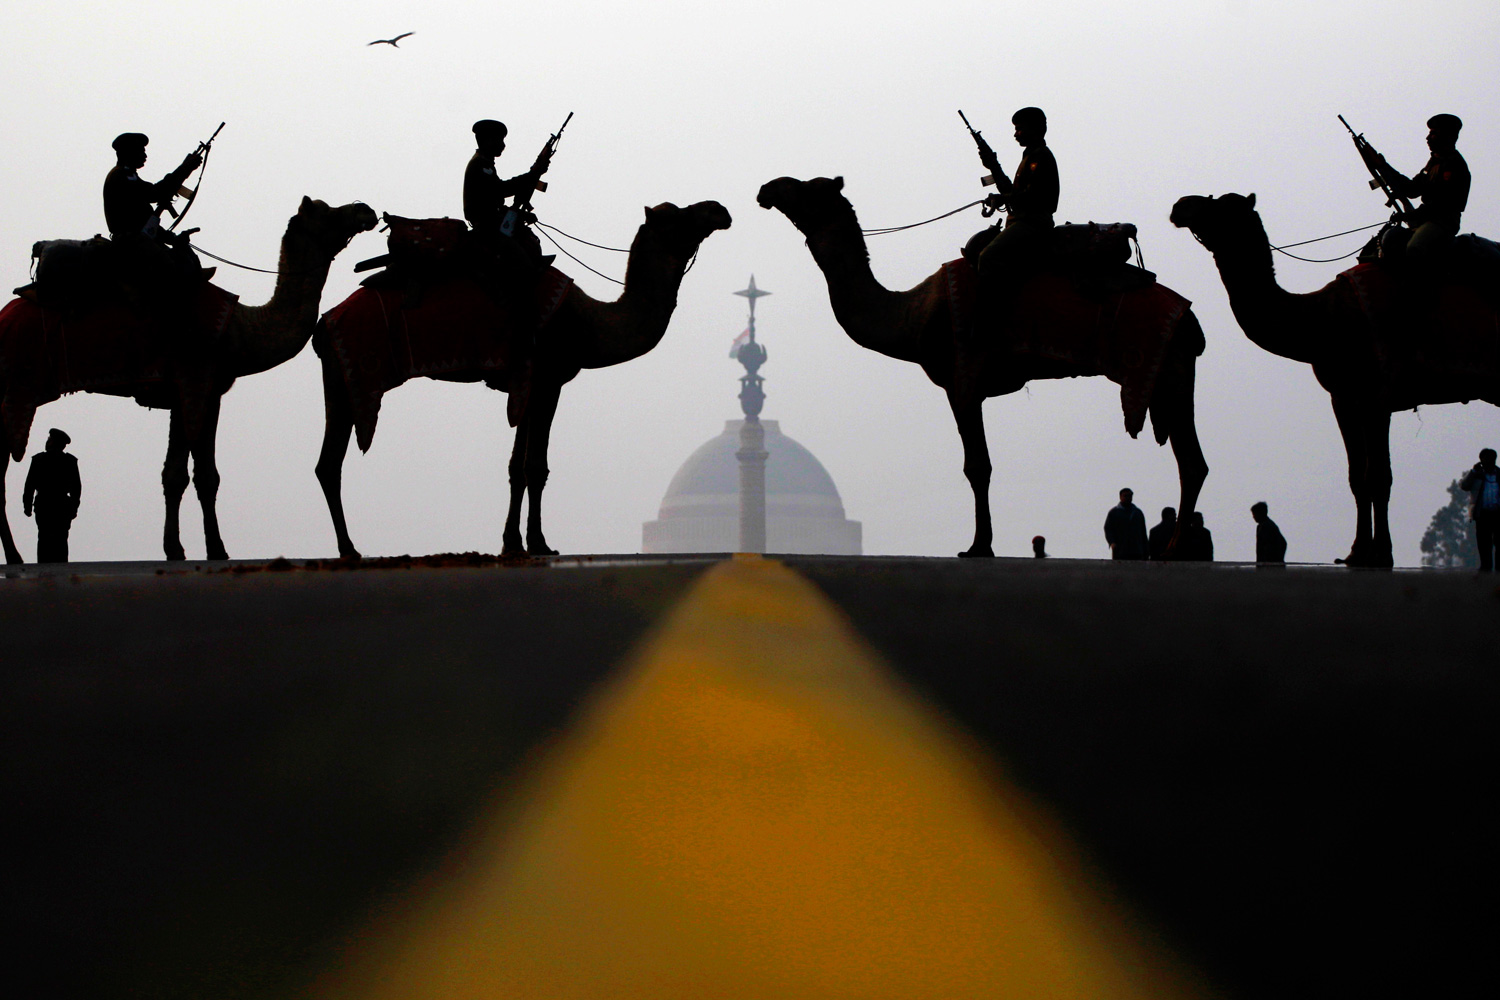 January 17, 2012. Indian soldiers from the Border Security Forces stand at attention atop camels in front of the Presidential Palace during a ceremony in preparation for the annual Beating Retreat in New Delhi, India.